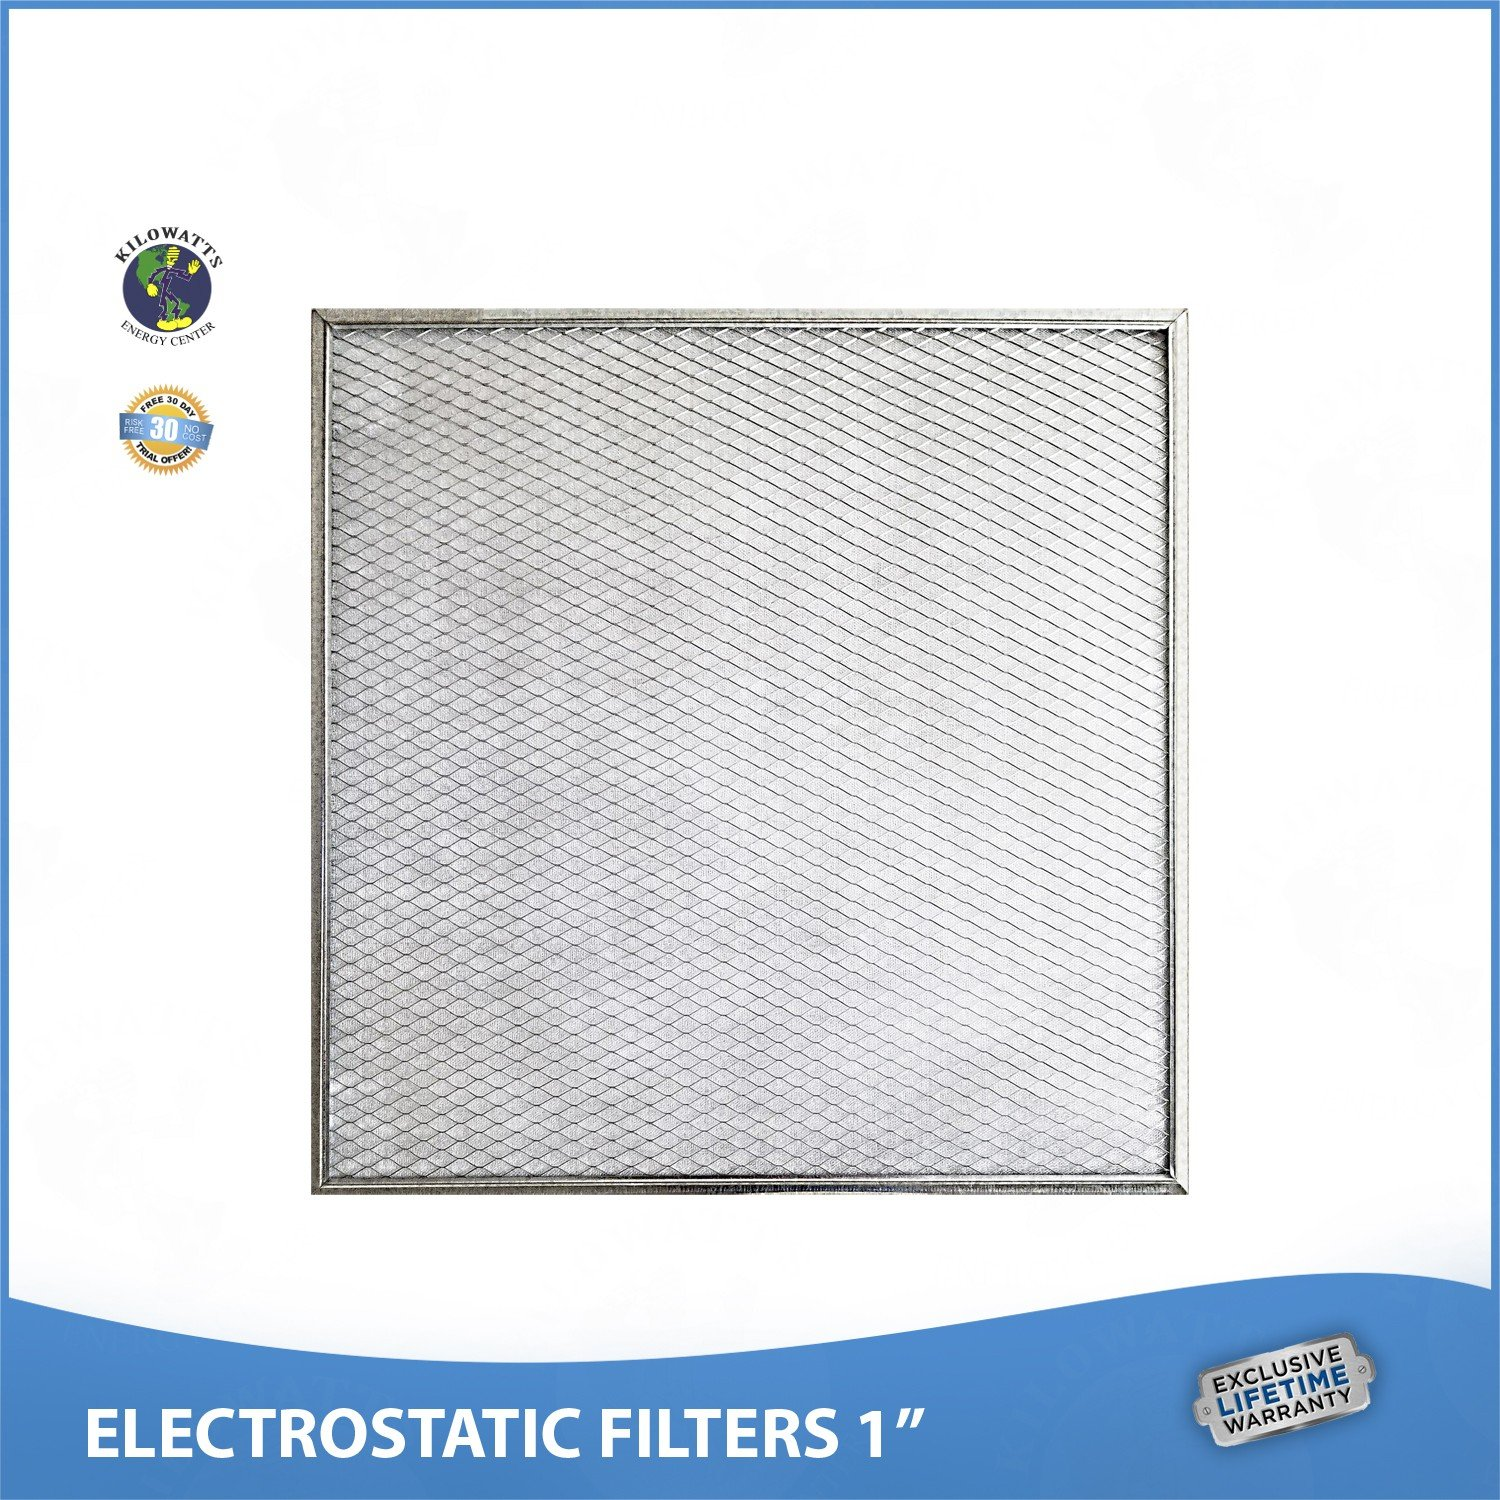 16x30x1 Lifetime Air Filter - Electrostatic Washable Permanent A/C Silver Steel Frame 65% more efficiency